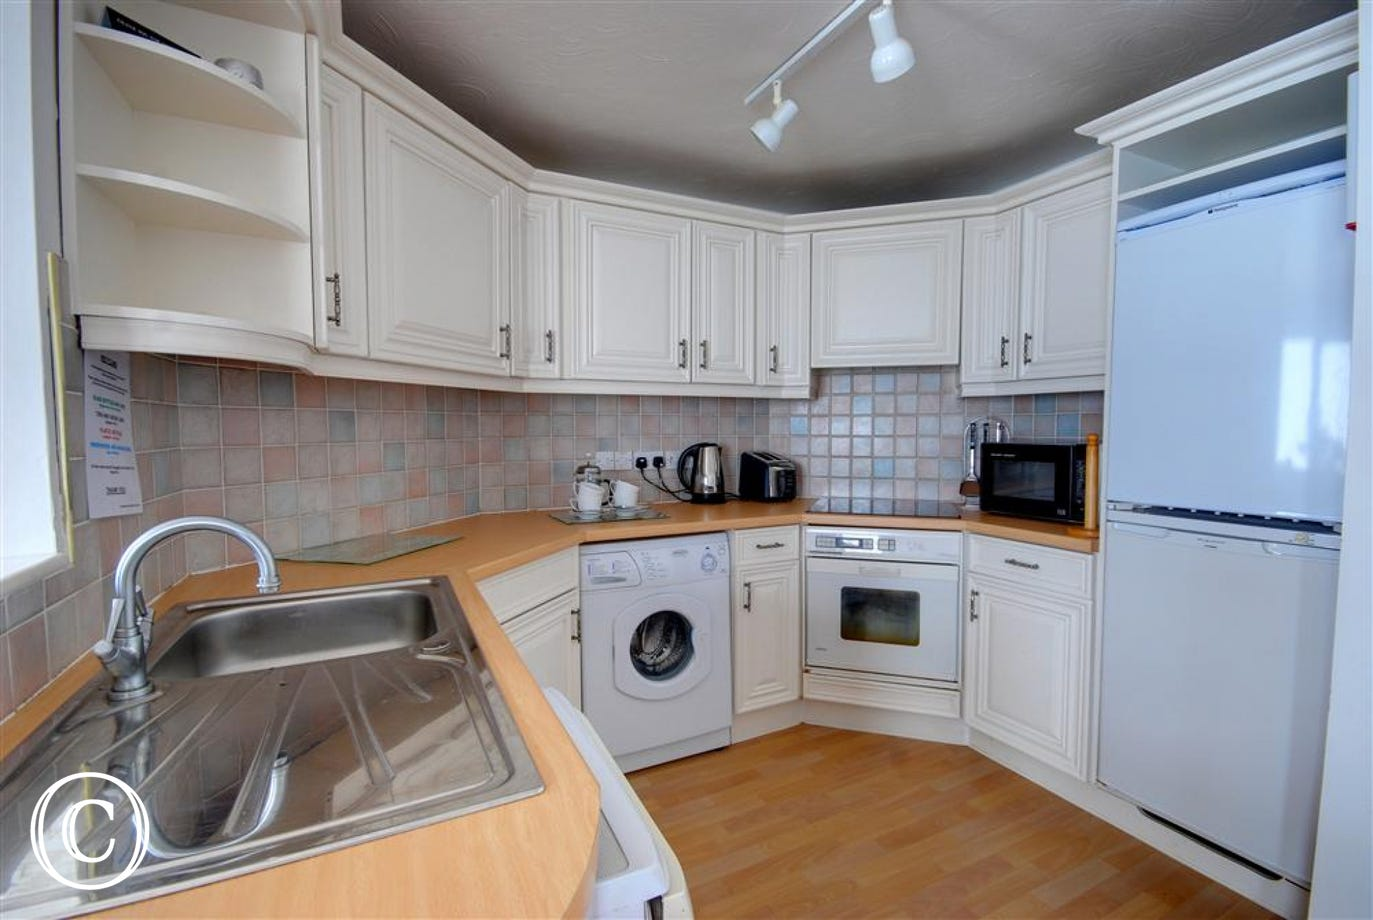 The kitchen is modern and spacious with a large fridge freezer.